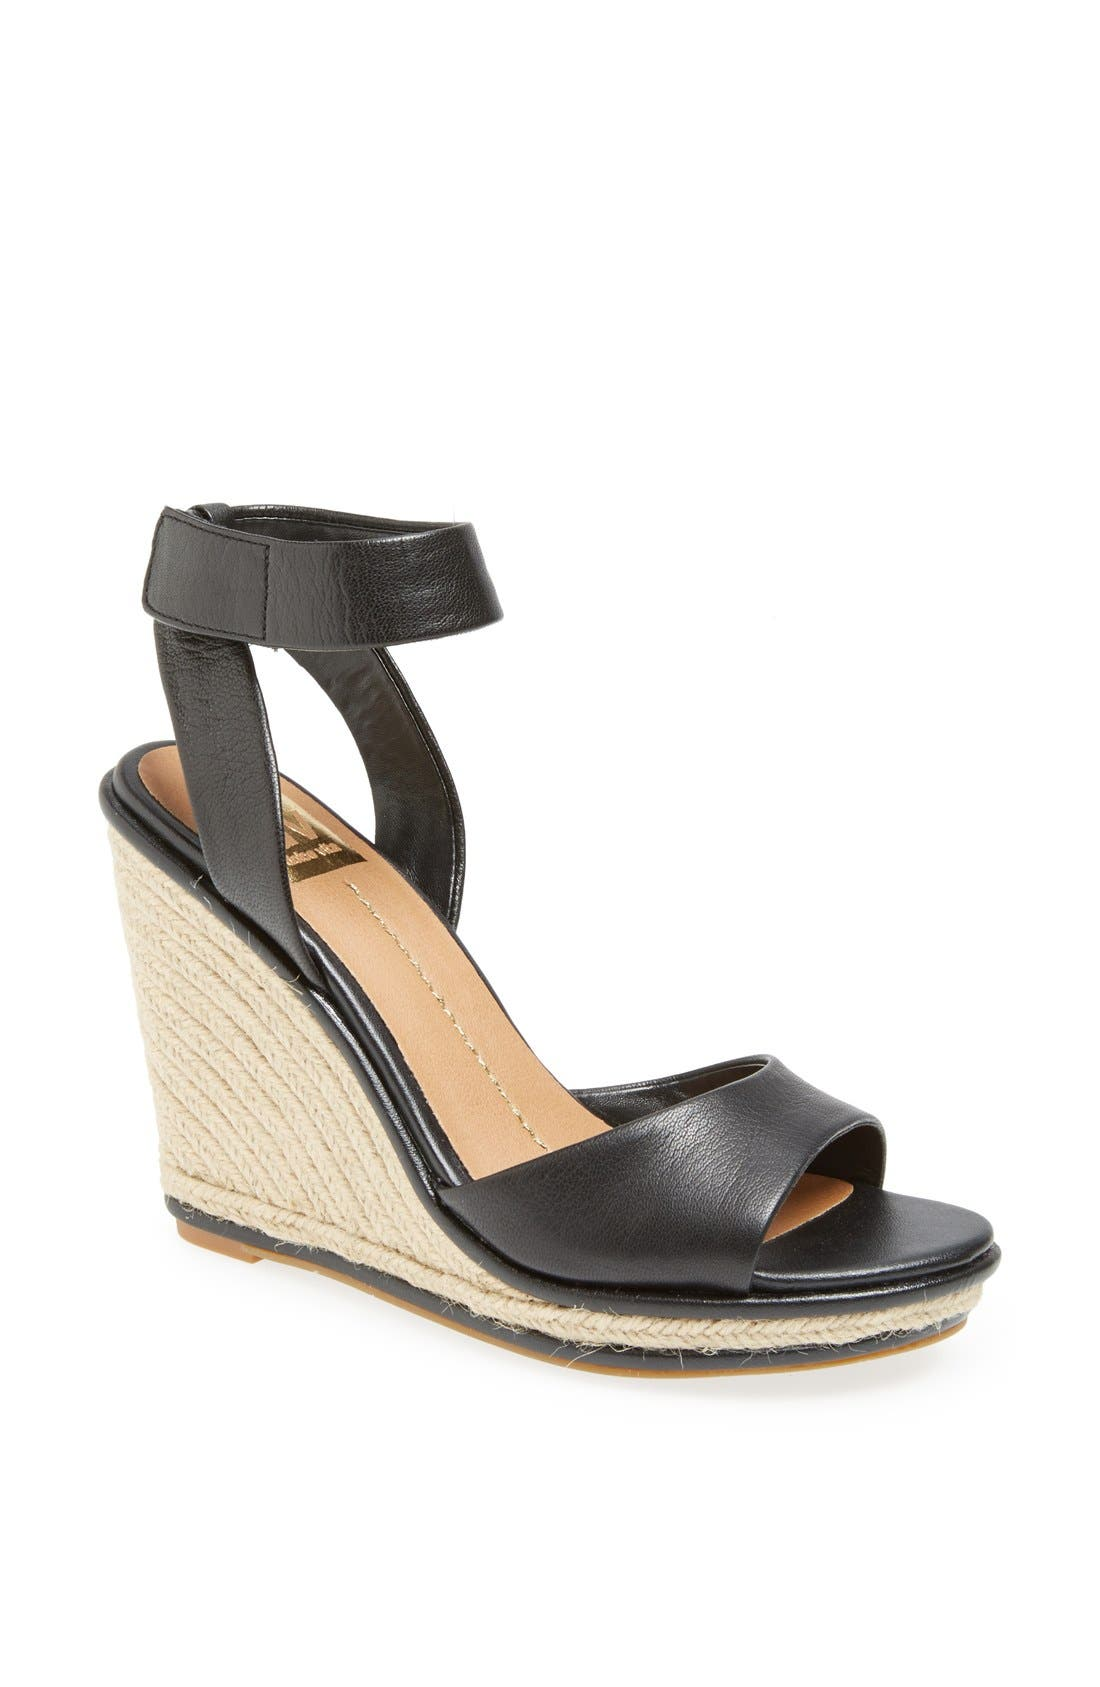 DV by Dolce Vita 'Tonya' Sandal,                             Main thumbnail 1, color,                             001